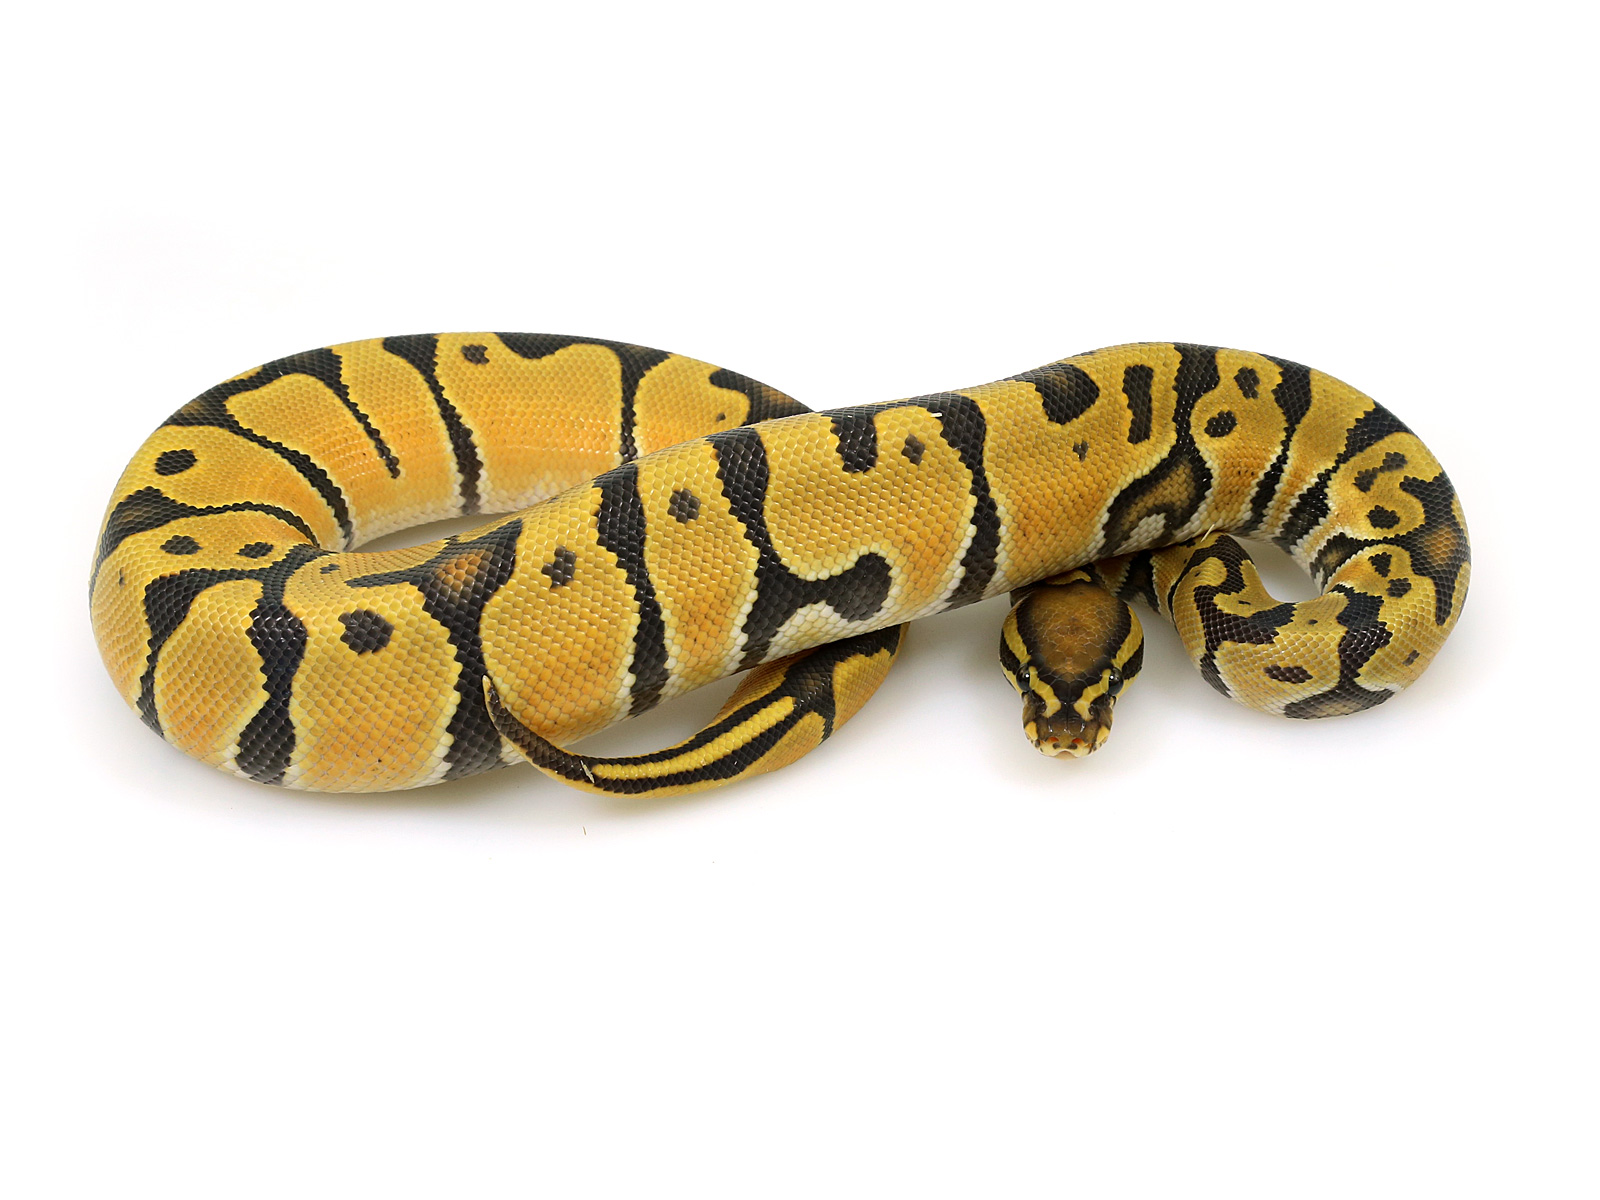 ball python, orange dream ghost